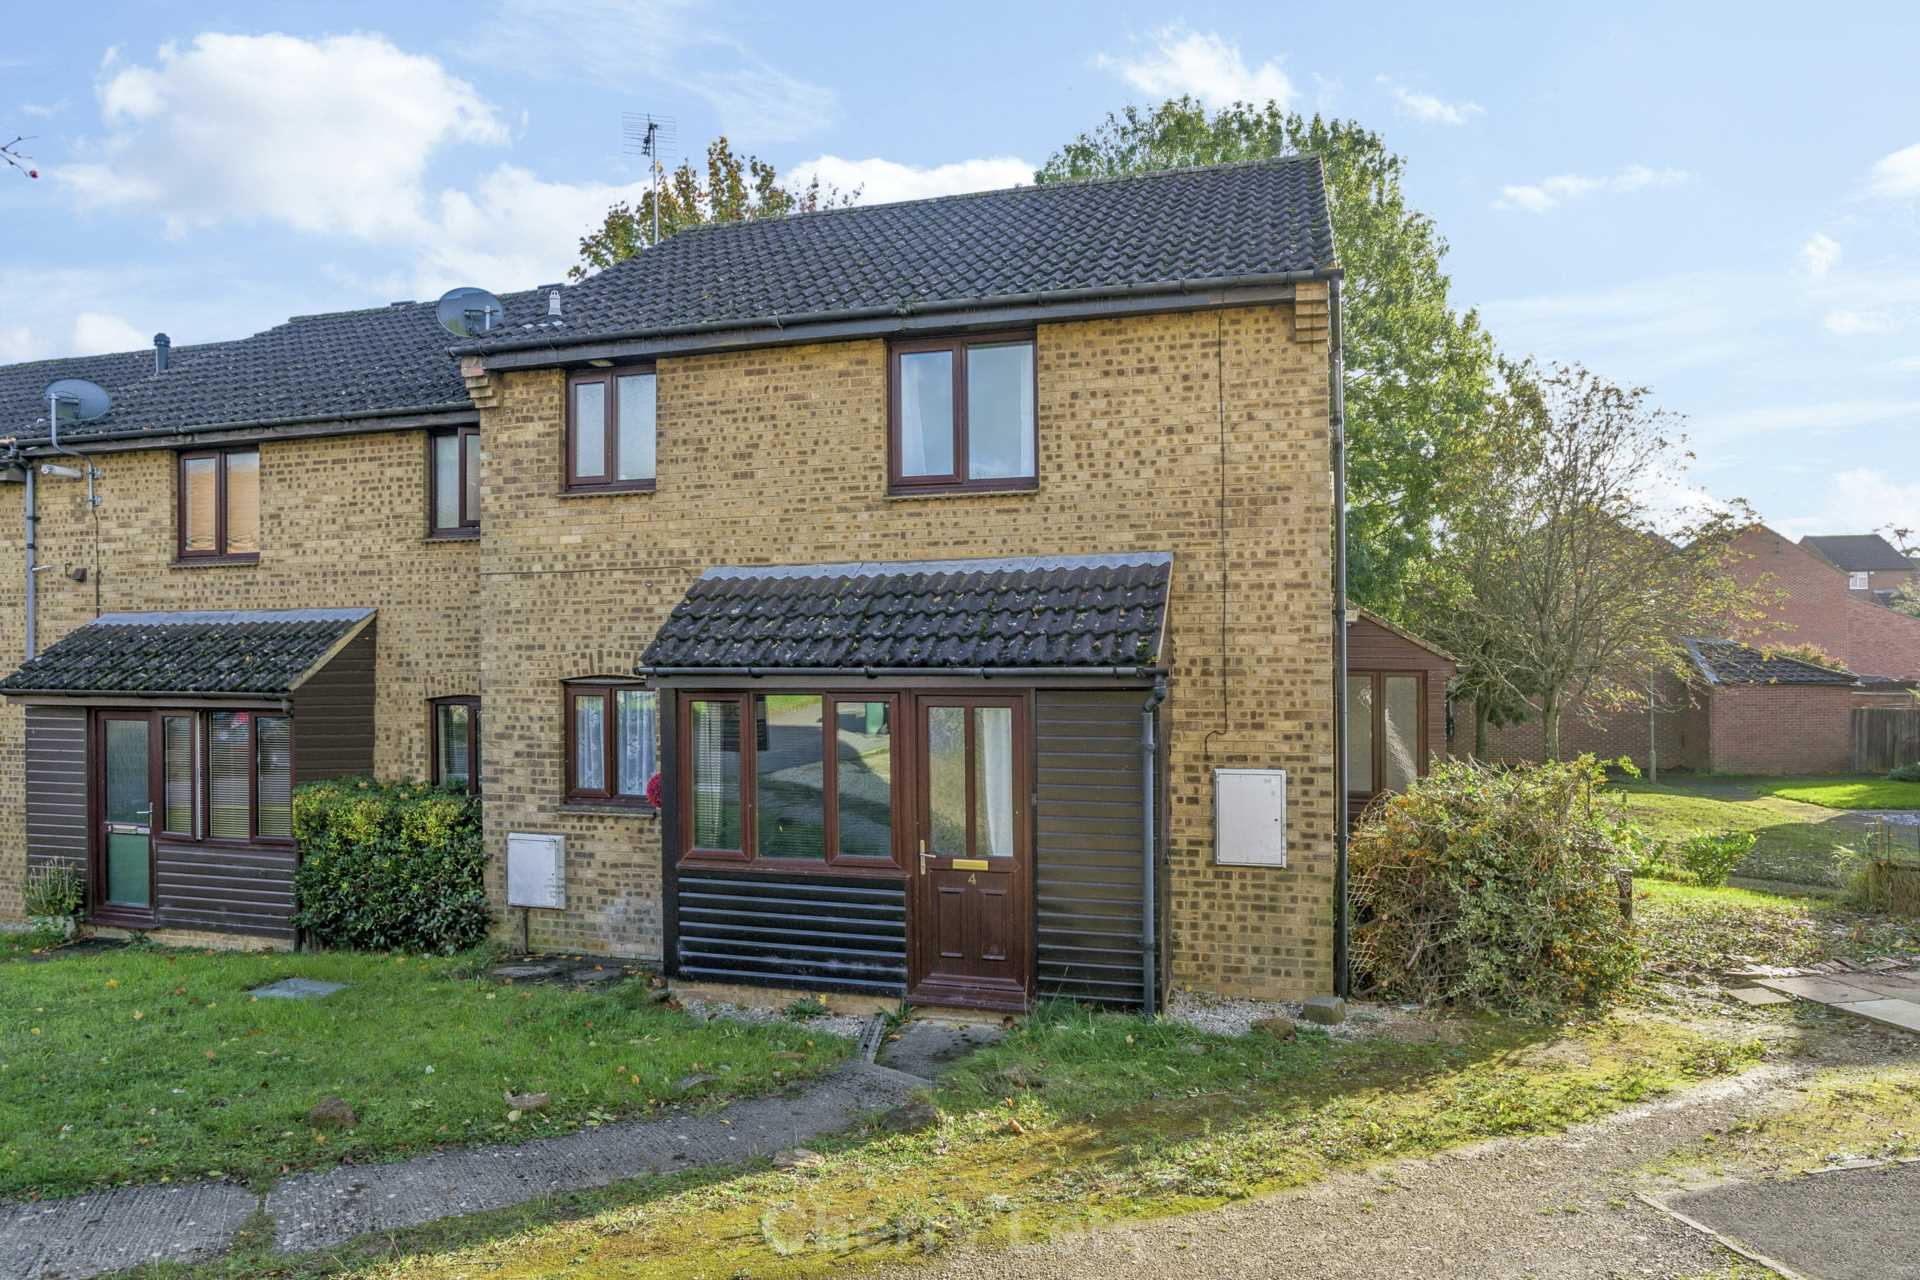 1 bed end of terrace house to rent in Bedford Close, Banbury, OX16  - Property Image 1